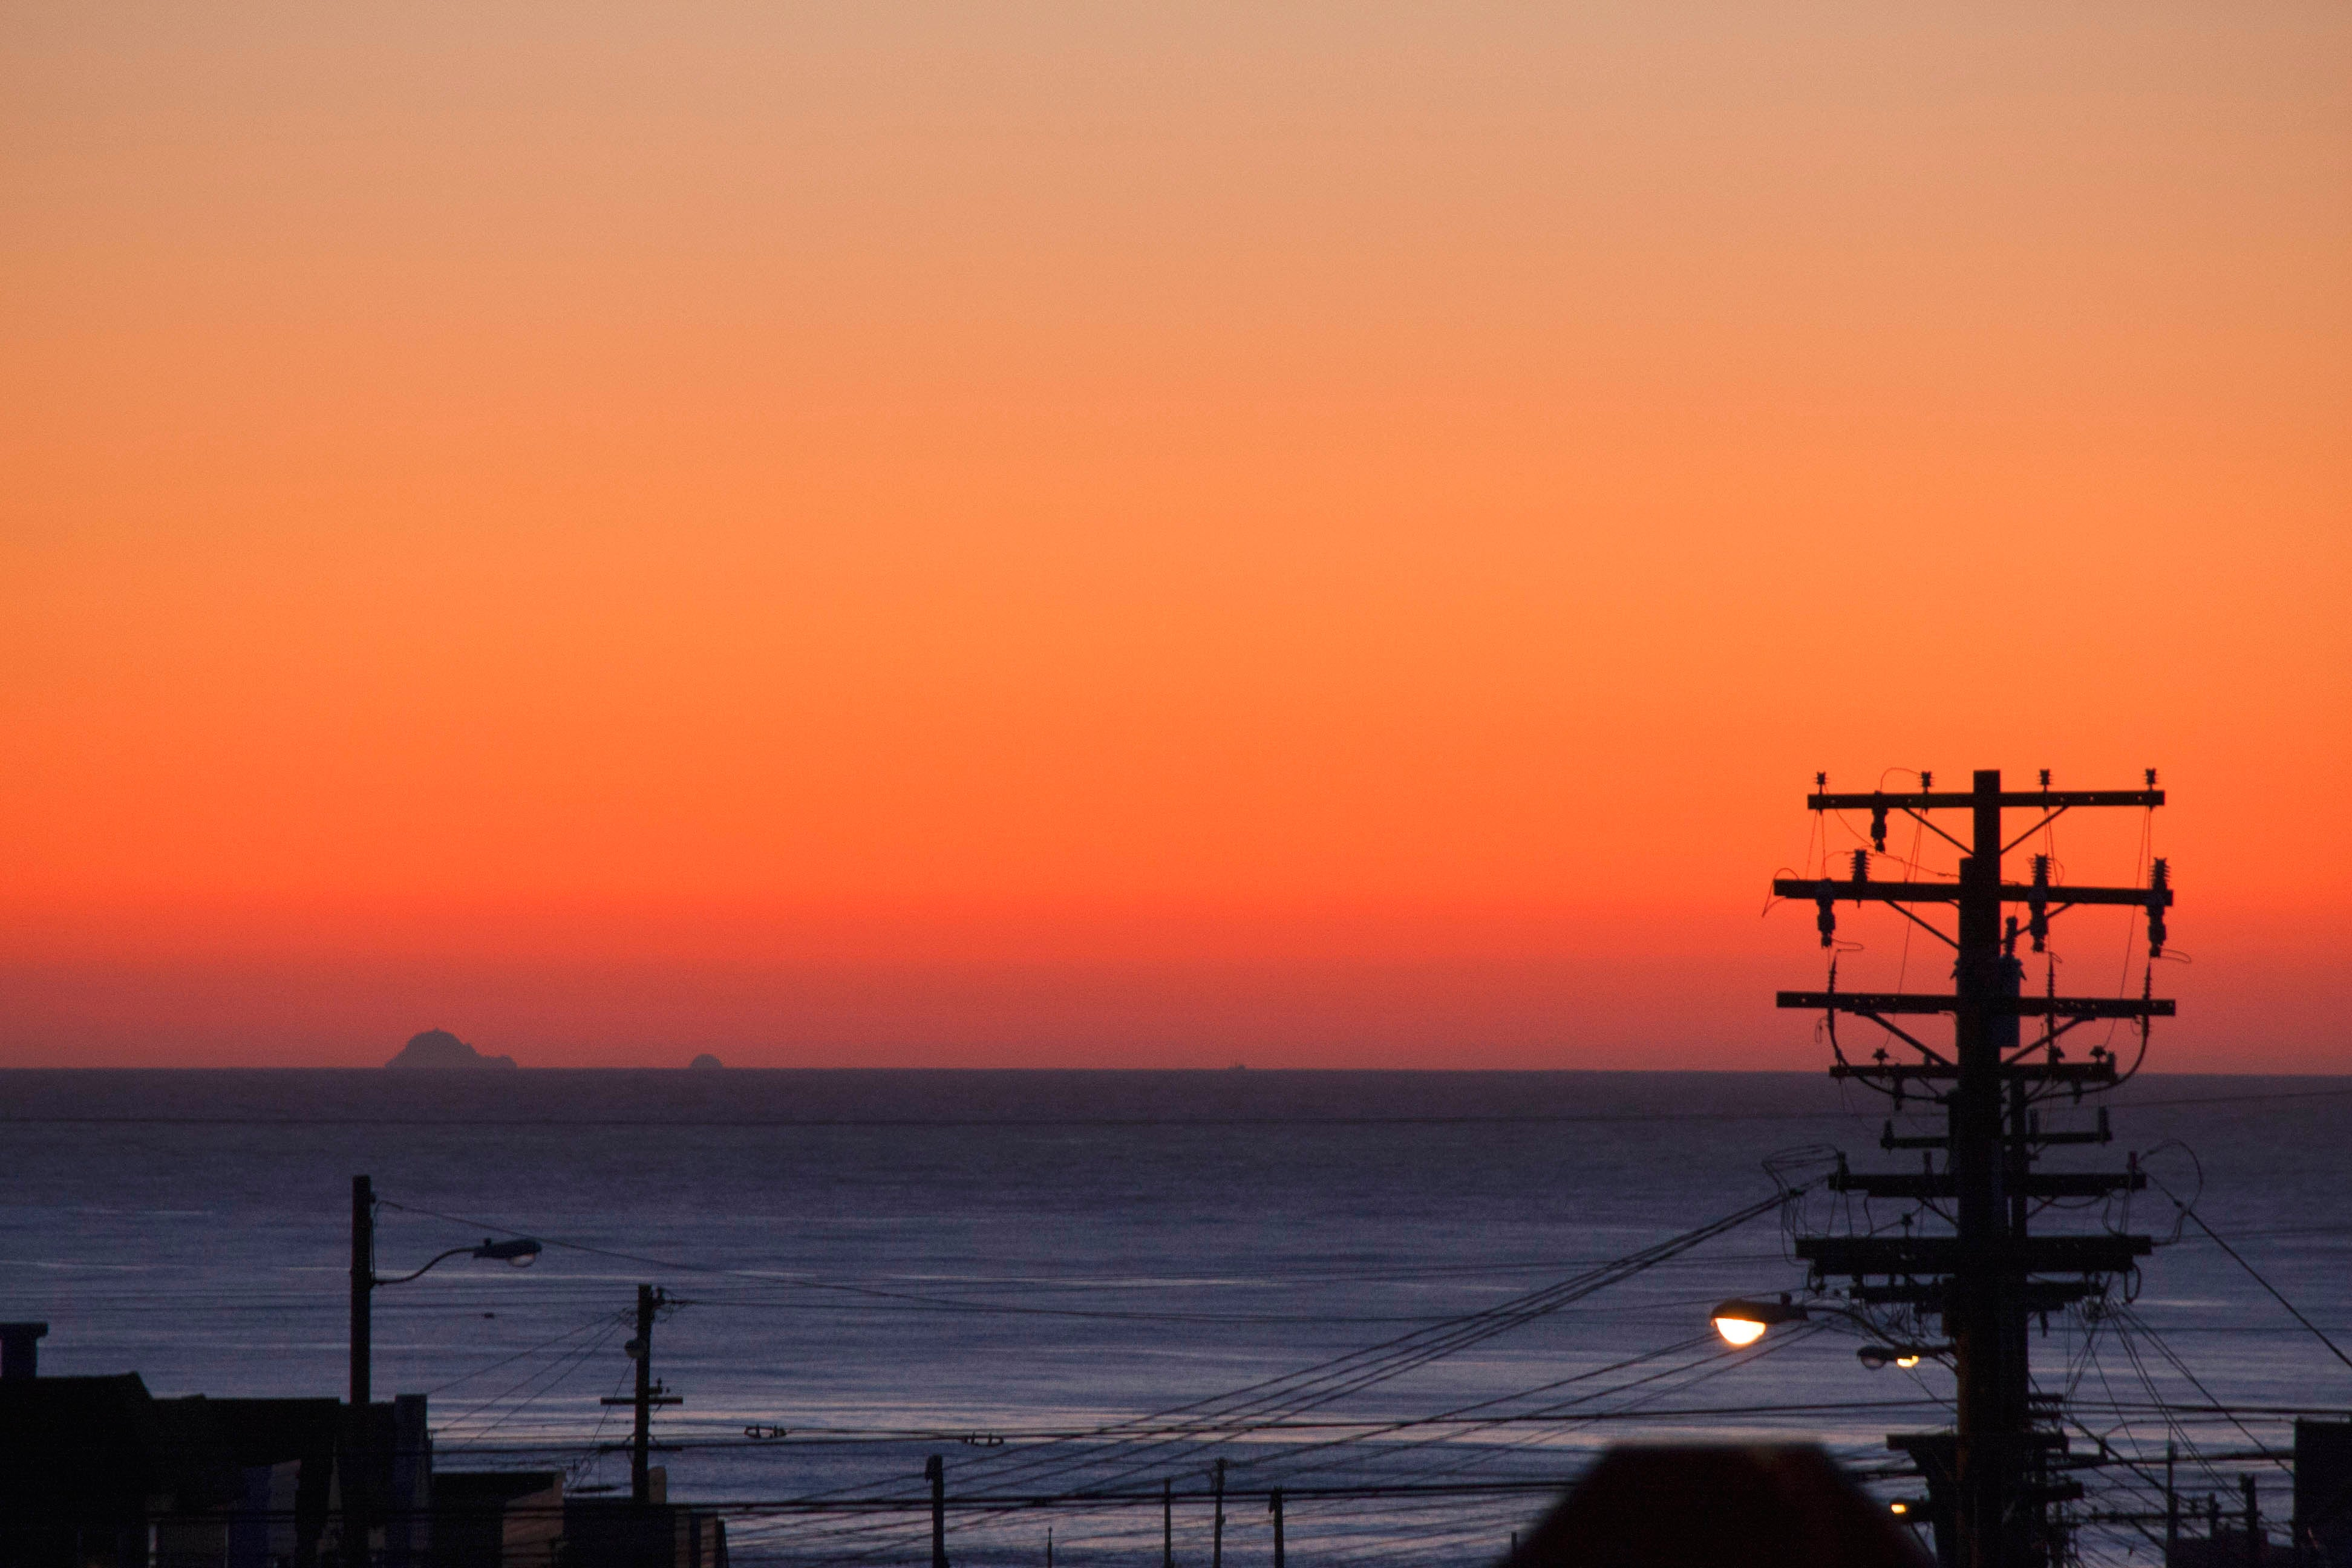 View of the Outer Sunset neighborhood of San Francisco